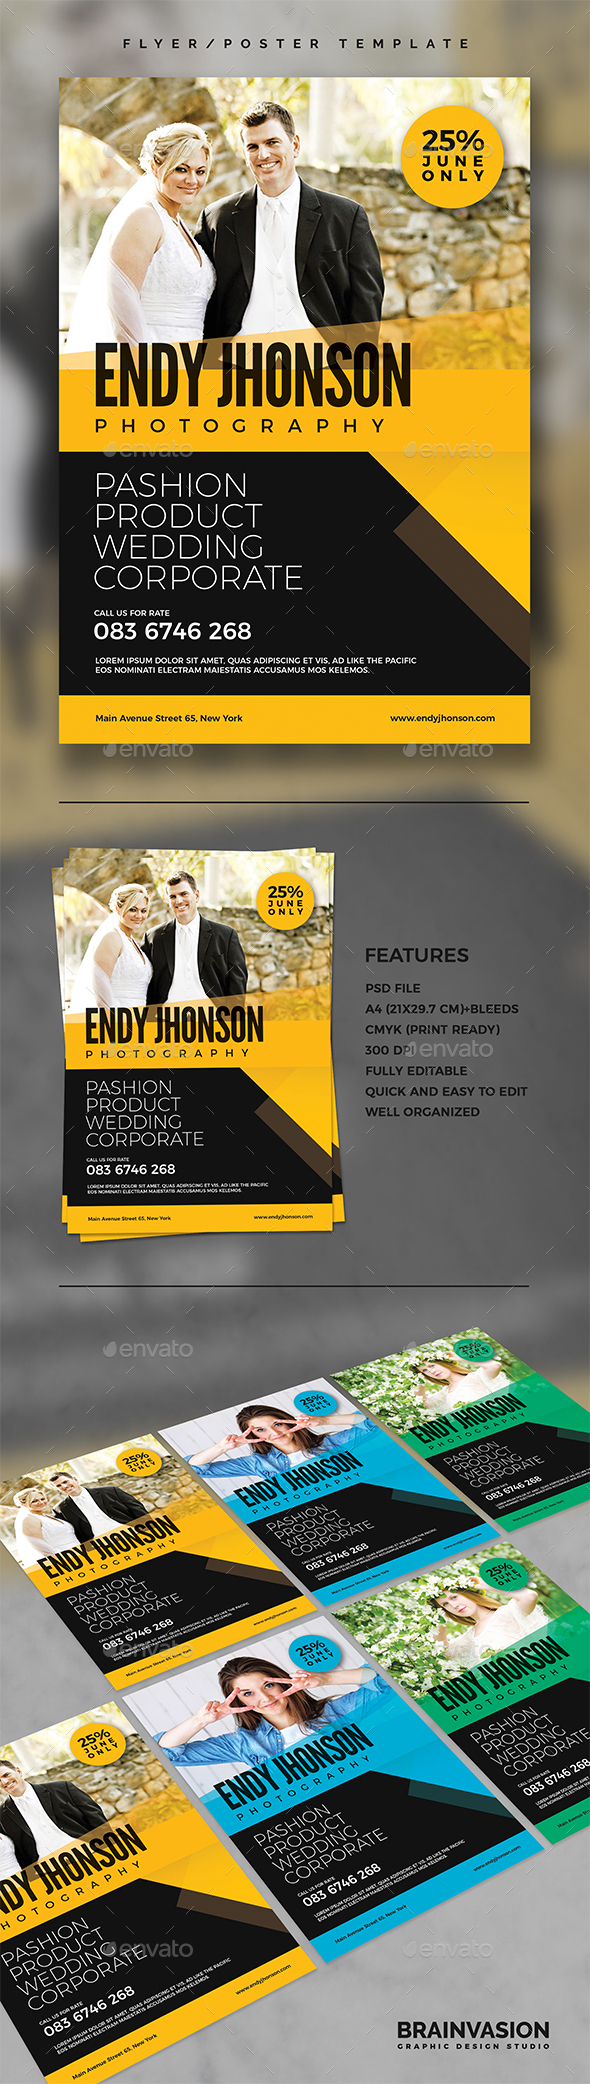 Photographer Flyer/Poster Template Vol.02 - Corporate Flyers